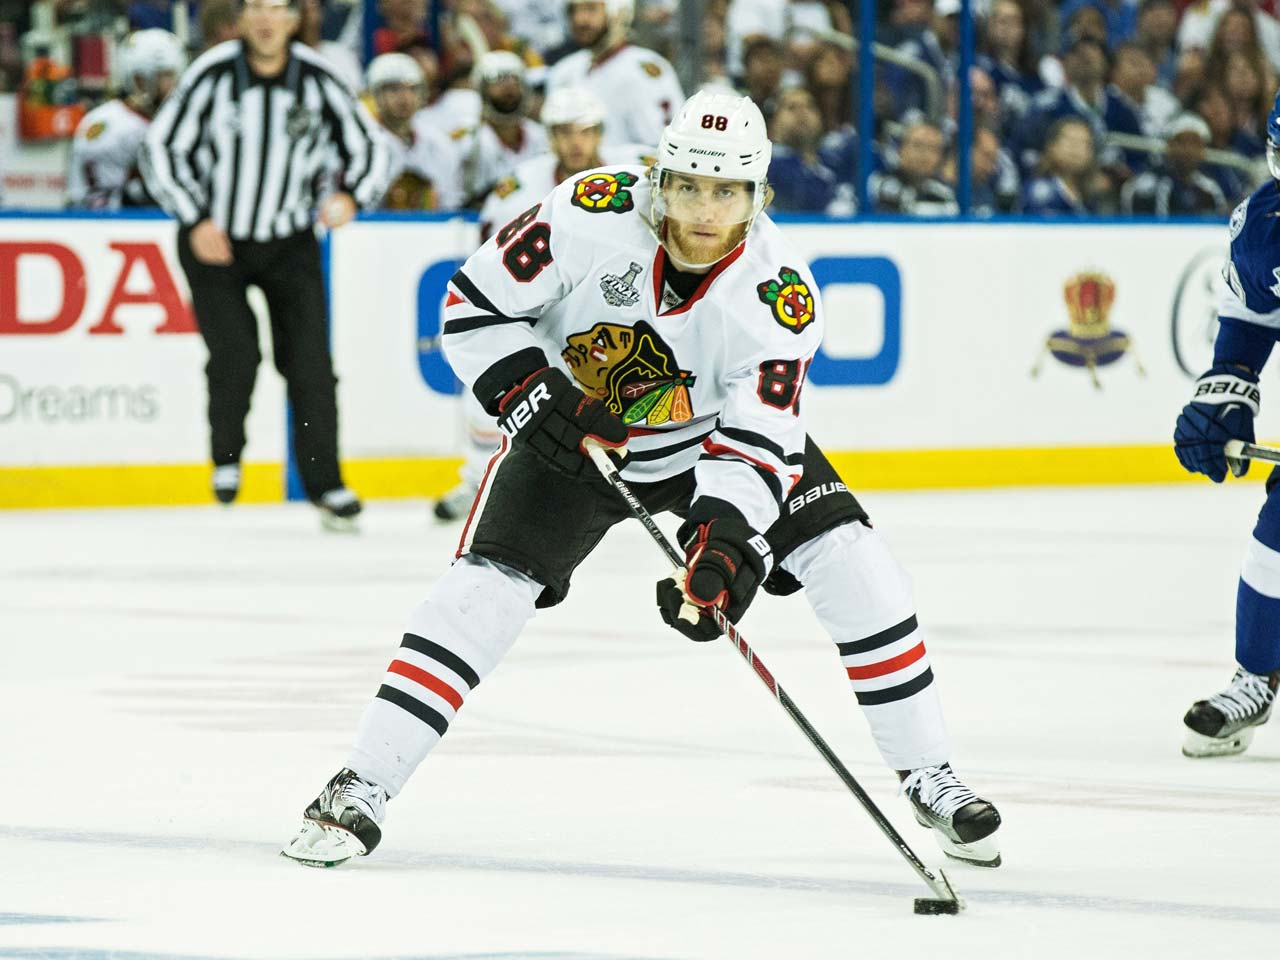 Patrick Kane skates with the puck in the first period.